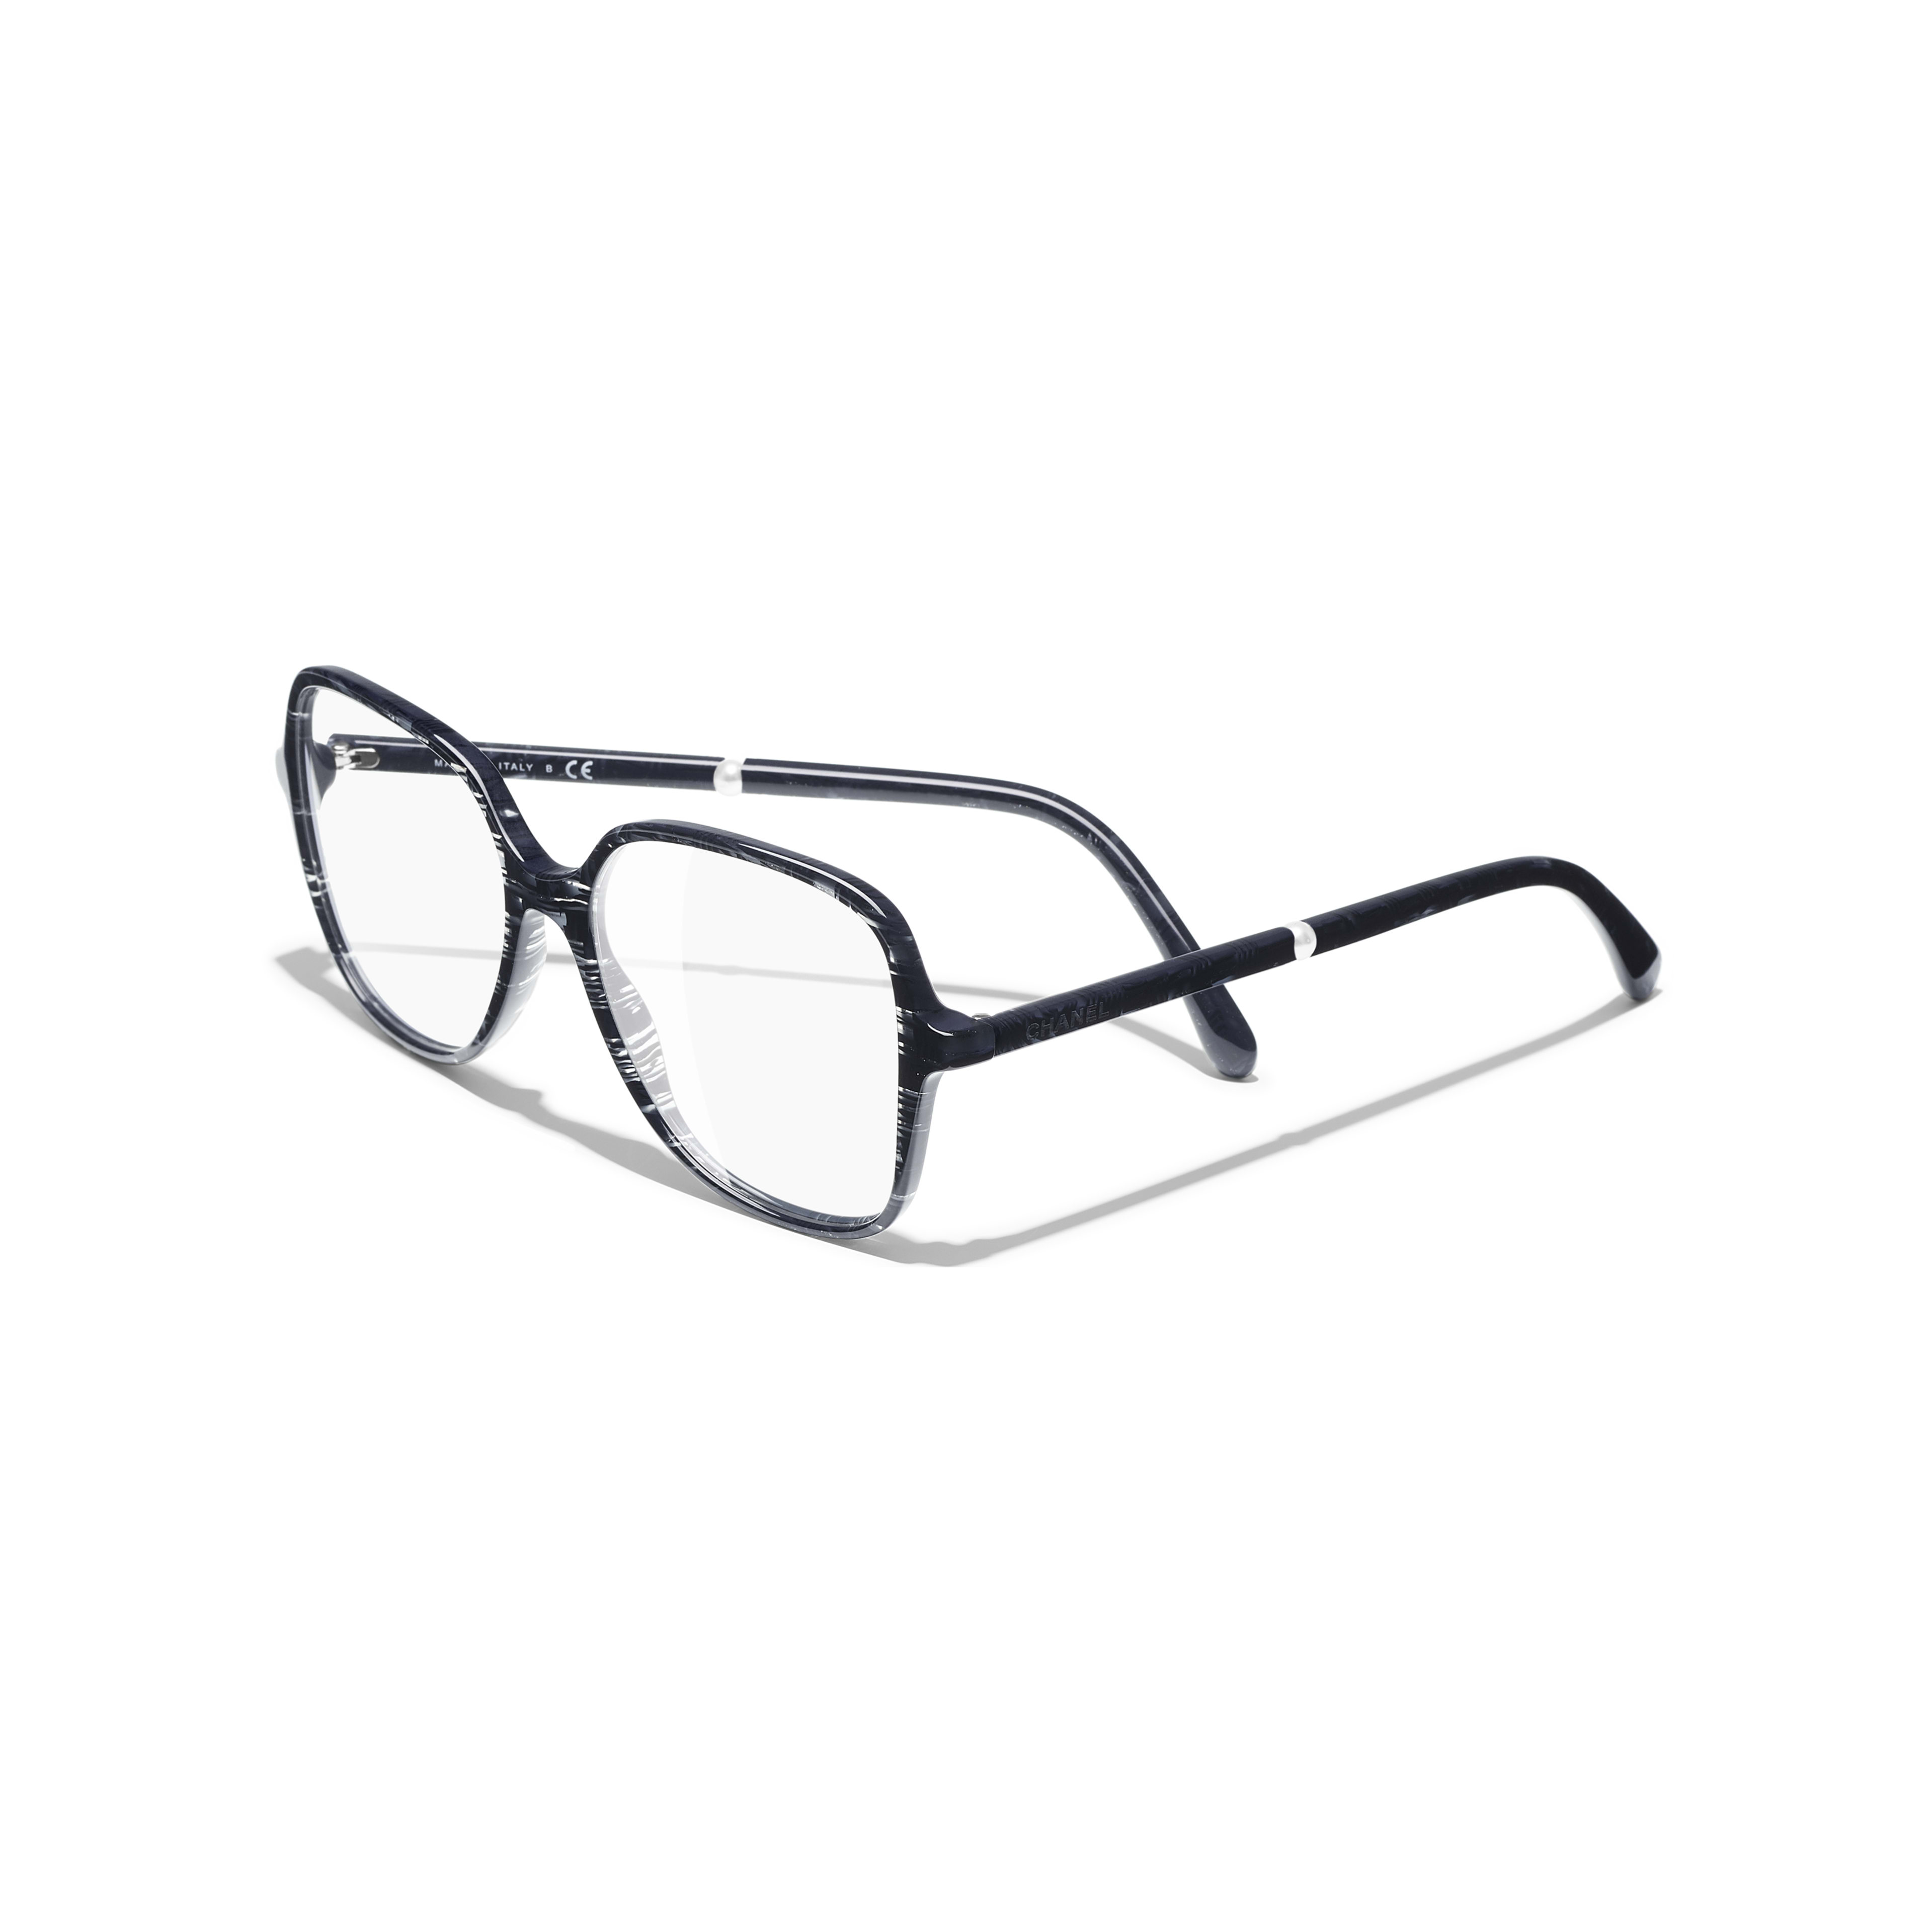 Square Eyeglasses - Glittered Dark Blue - Acetate & Imitation Pearls - Extra view - see full sized version